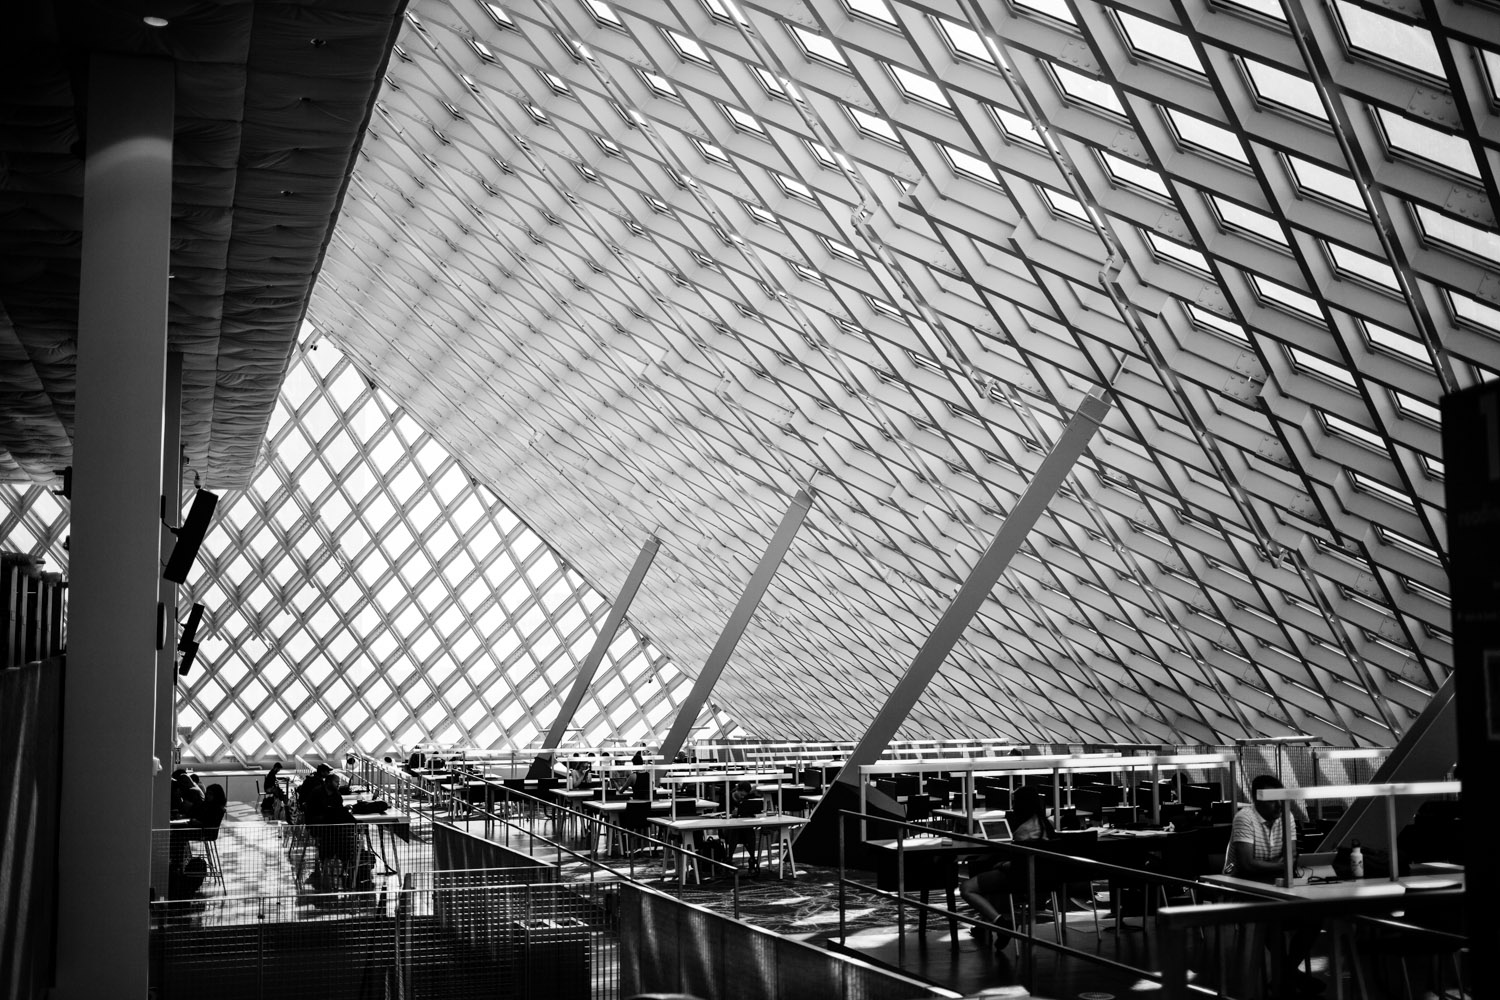 Inside theSeattle Public Library - Central Library location.